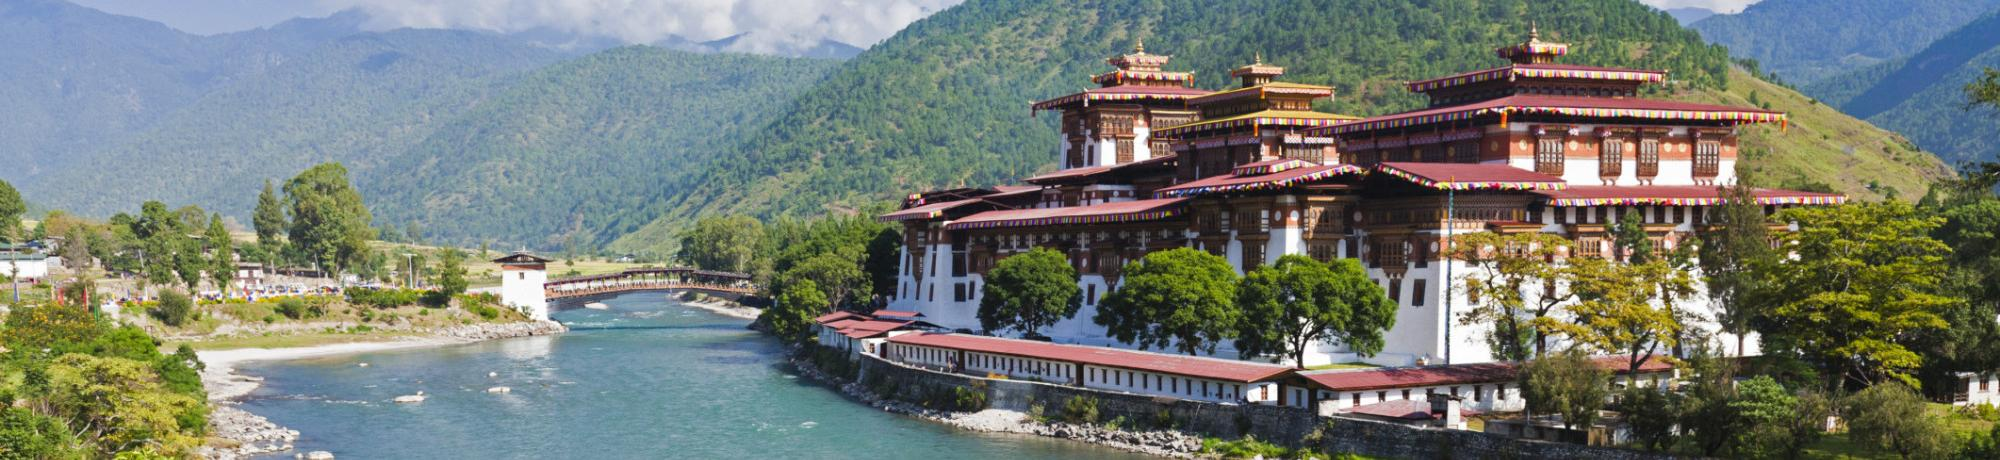 UC Davis Study Abroad, Summer Abroad Bhutan, Introduction to Geographic Information Systems Program, Header Image, Onsite Page